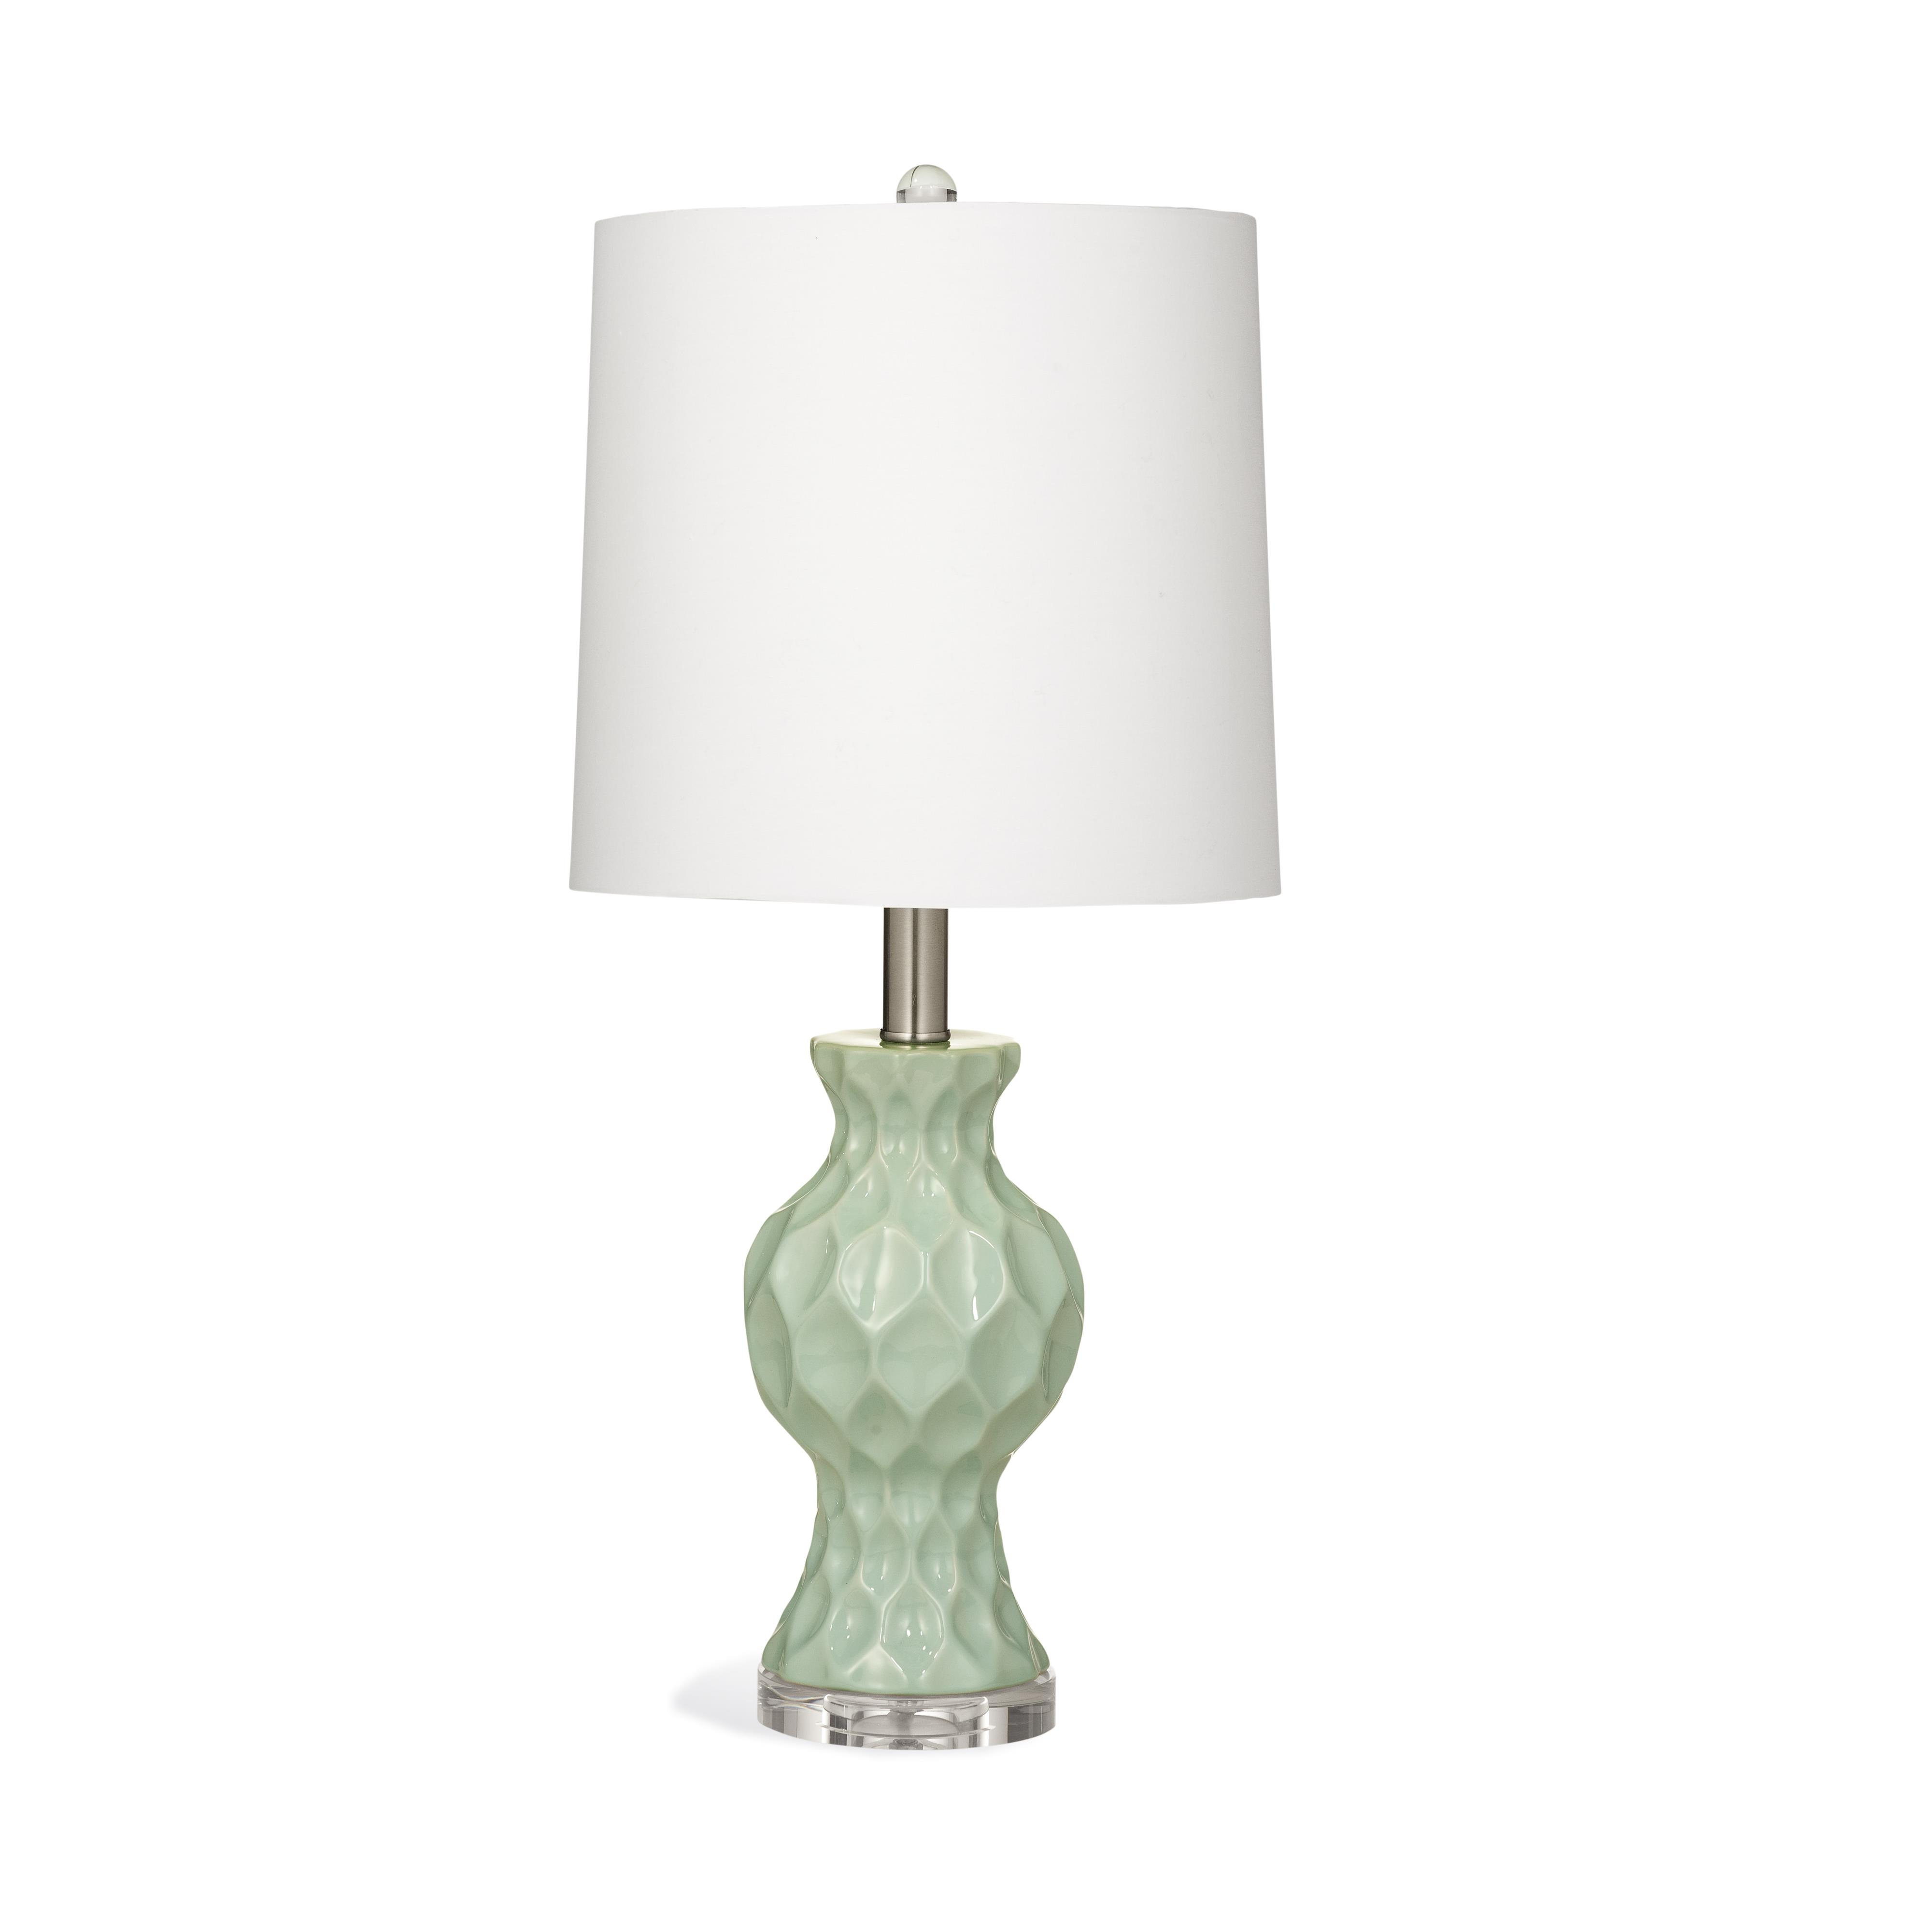 Staley Table Lamp